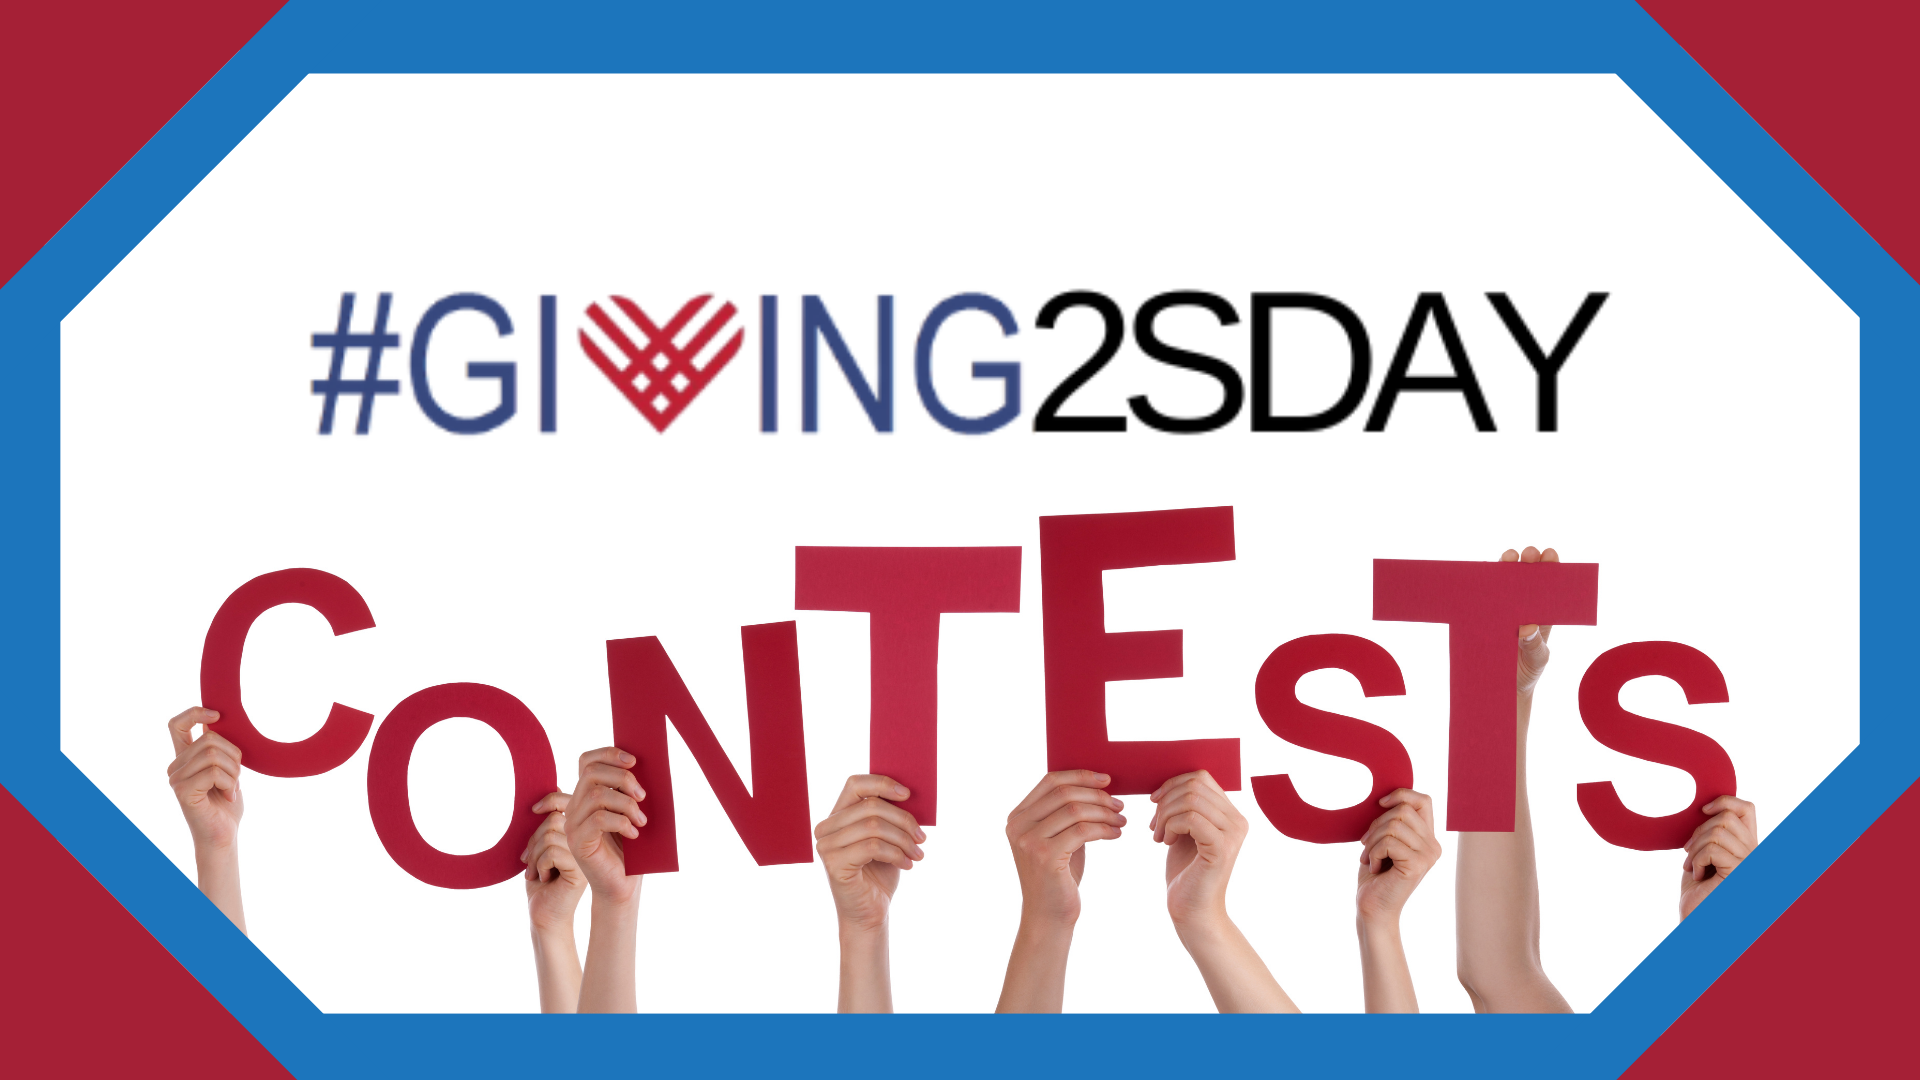 2020 #Giving2sday Contests Facebook Ad